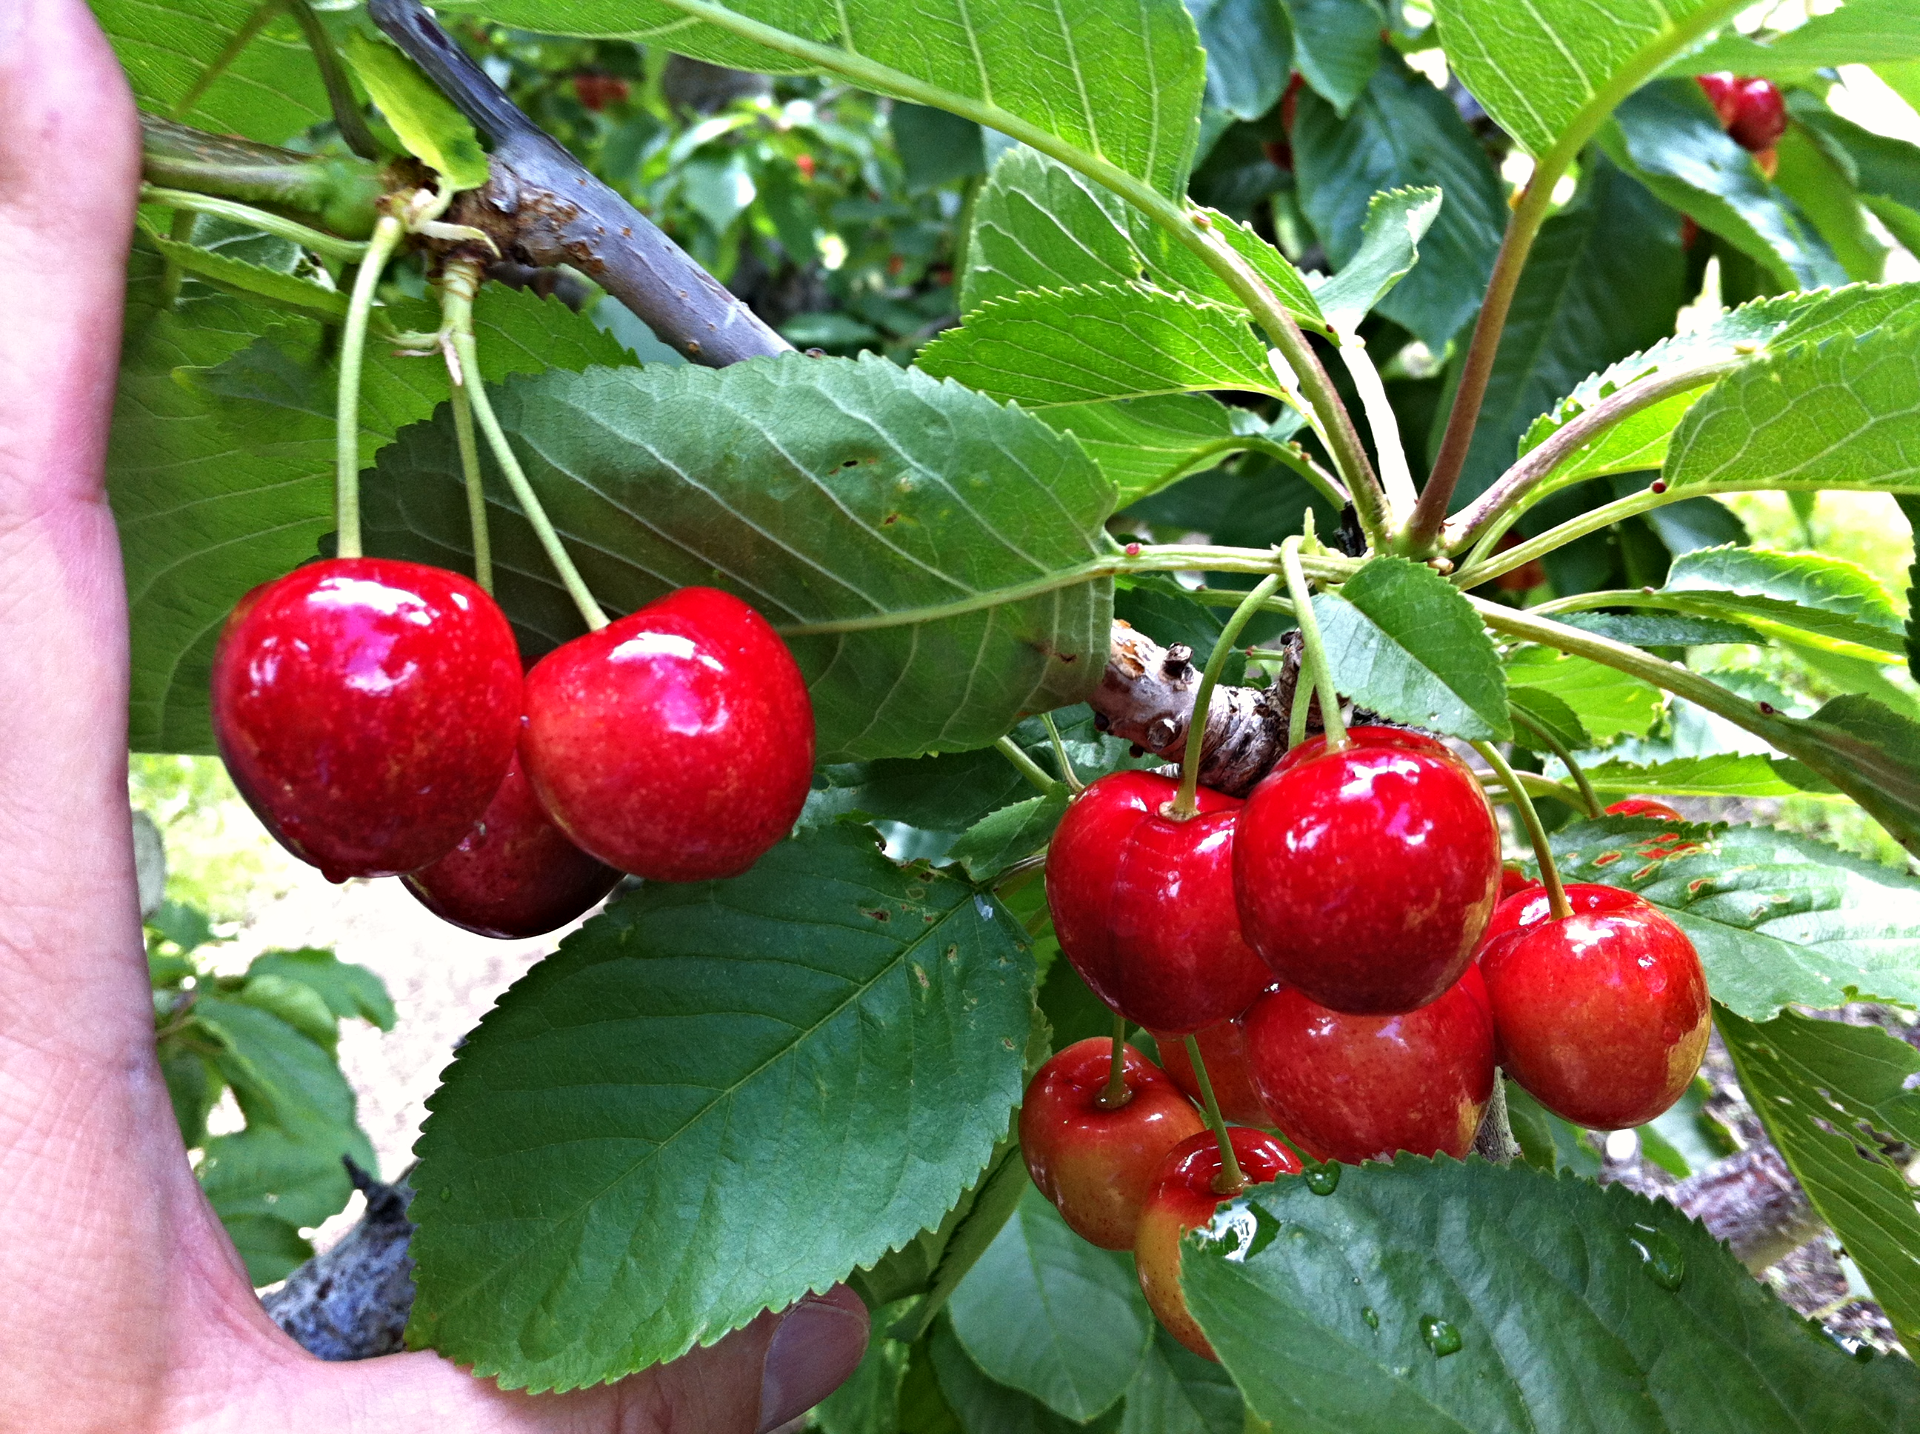 BC CHERRIES 2 WEEKS BEFORE HARVEST